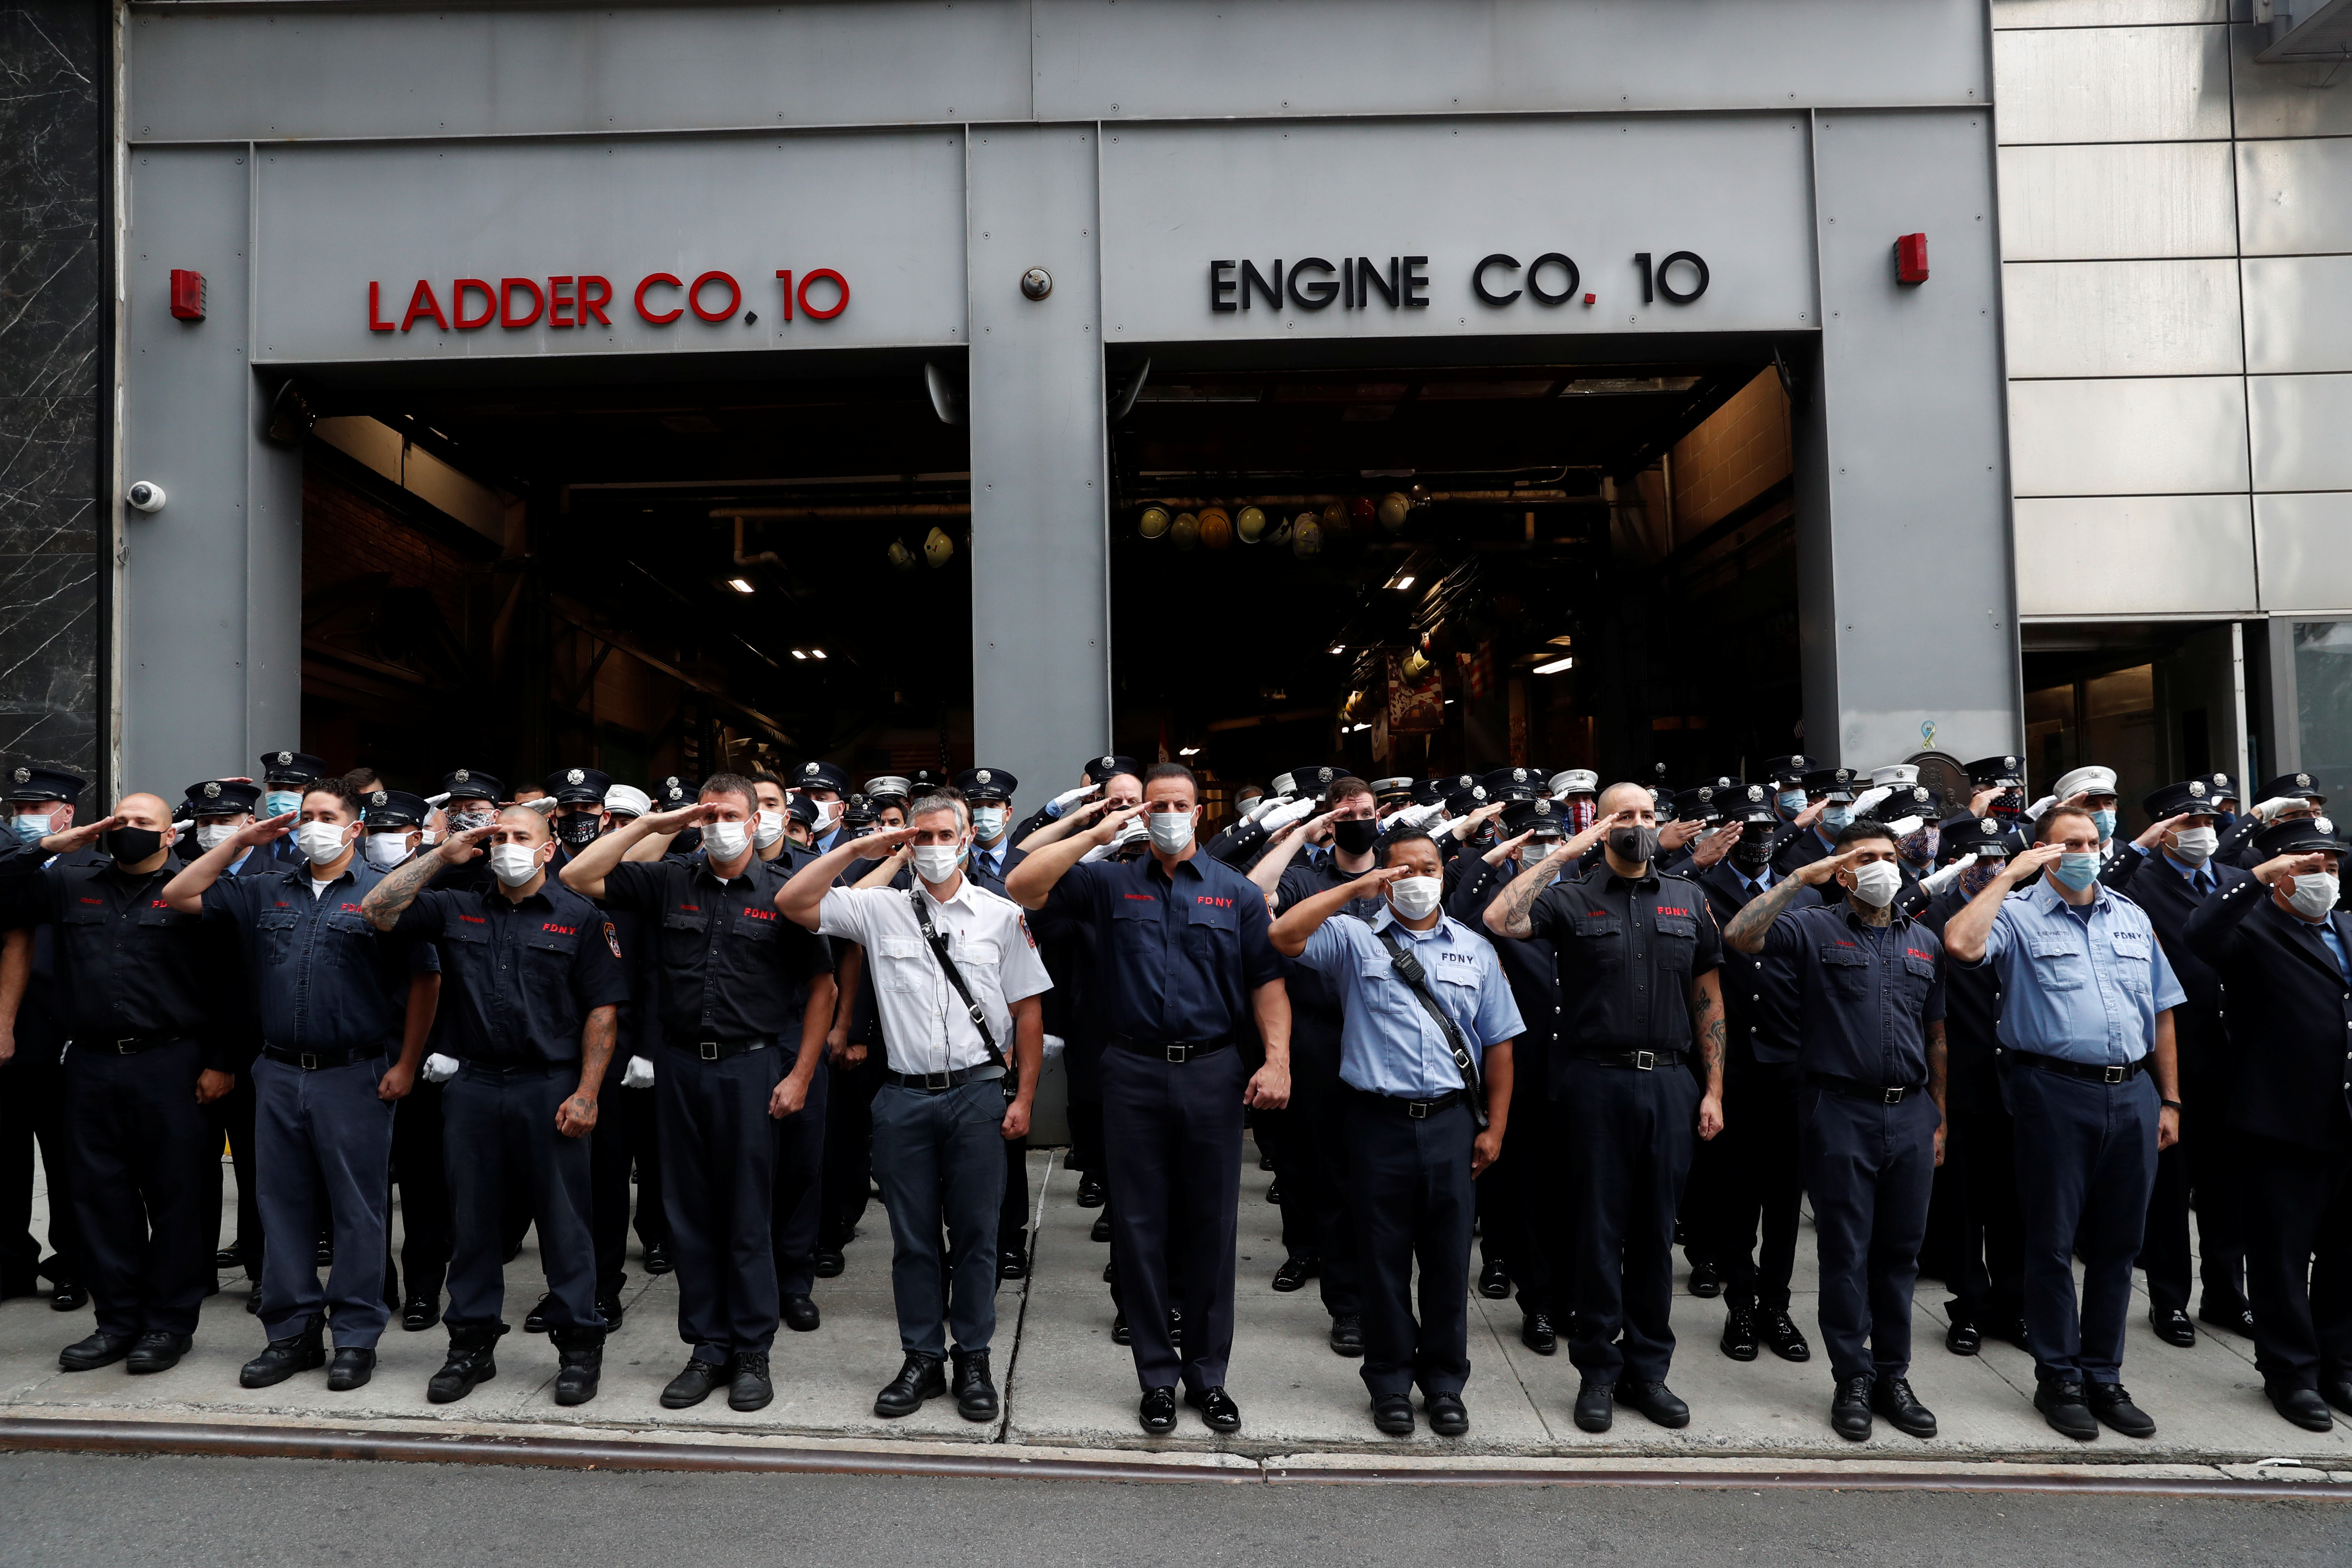 New York City Fire Department (FDNY) firefighters salute outside Ladder Co. 10, Engine Co. 10 on the 19th anniversary of the September 11, 2001 attacks on the World Trade Center in the Manhattan borough of New York City, New York, U.S., September 11, 2020. REUTERS/Shannon Stapleton - RC2CWI9L2HI7